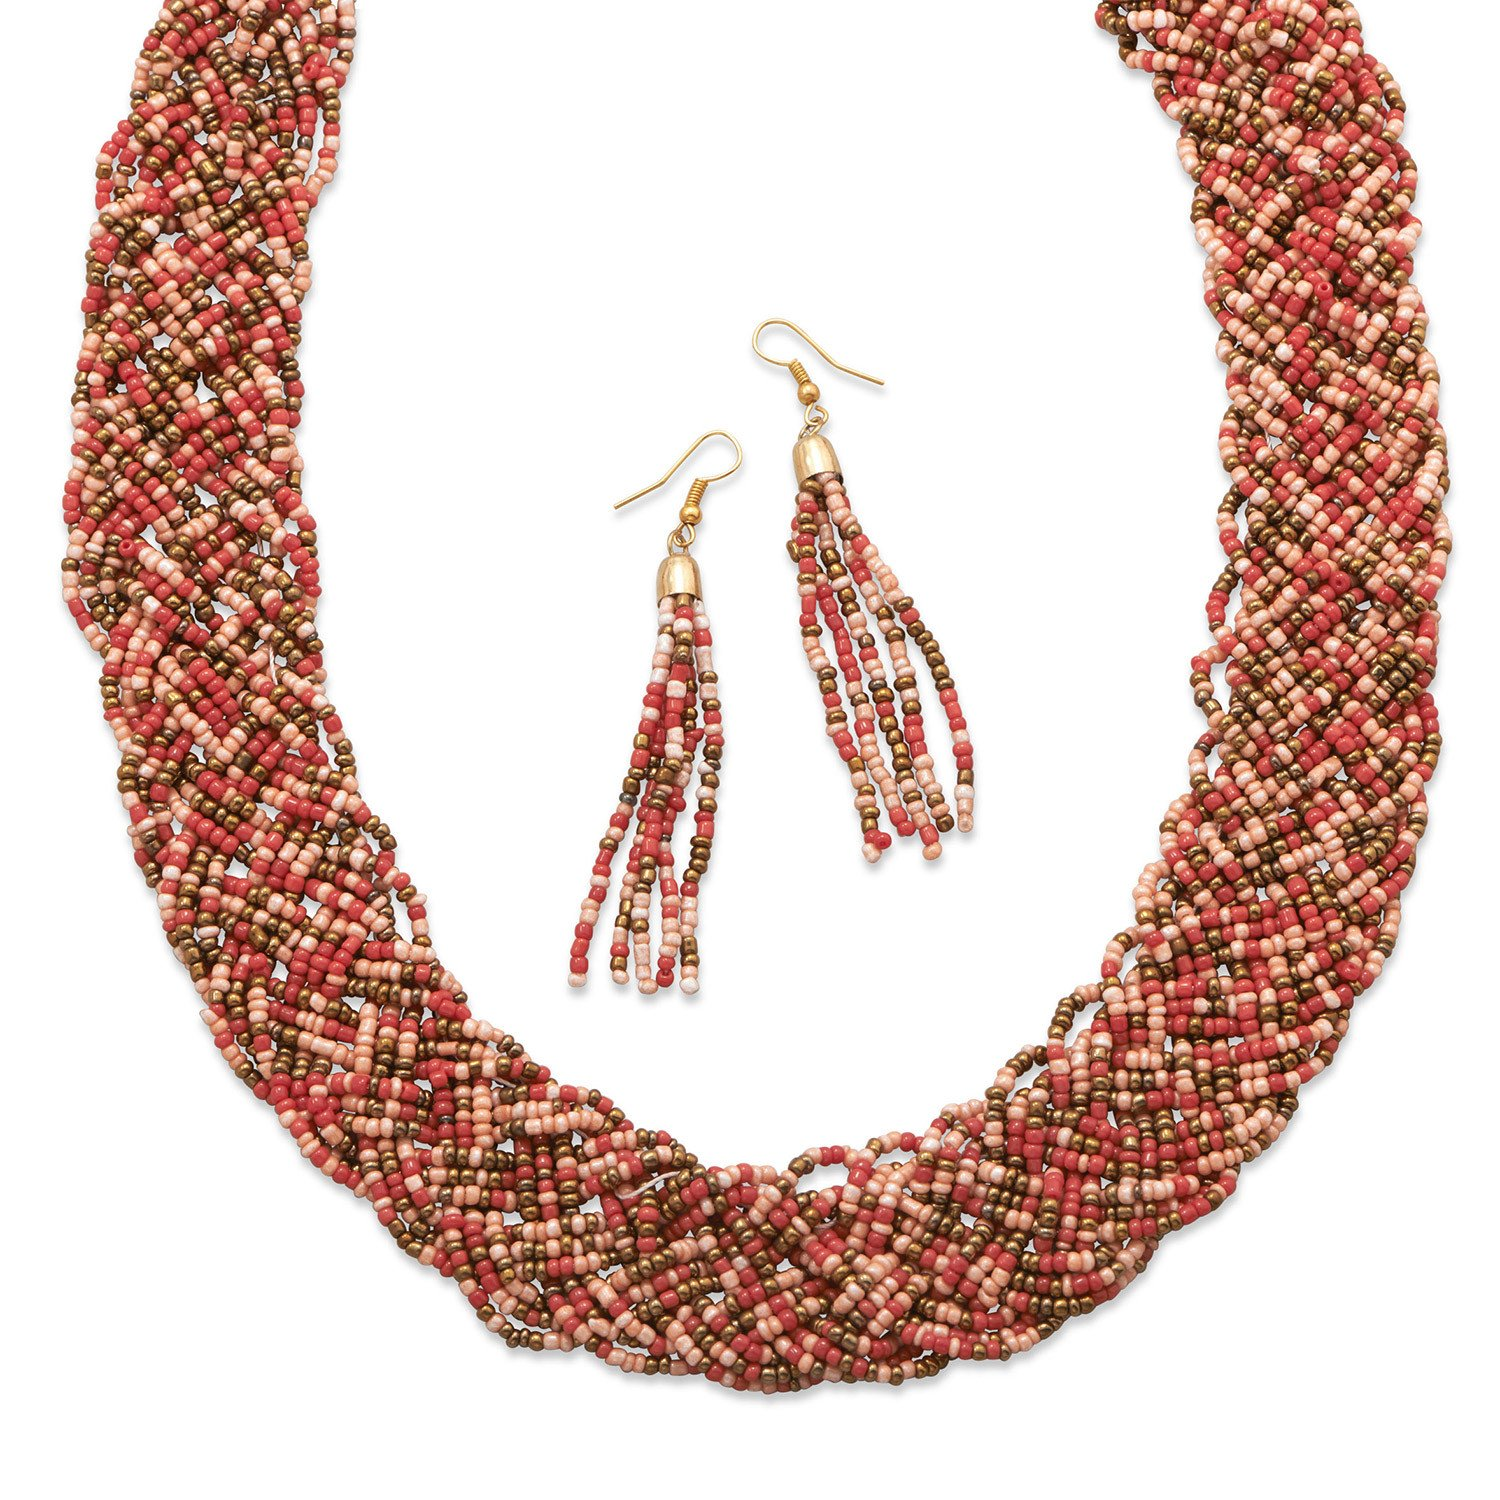 Woven Coral Glass Seed Bead Fashion Necklace and Earring Set